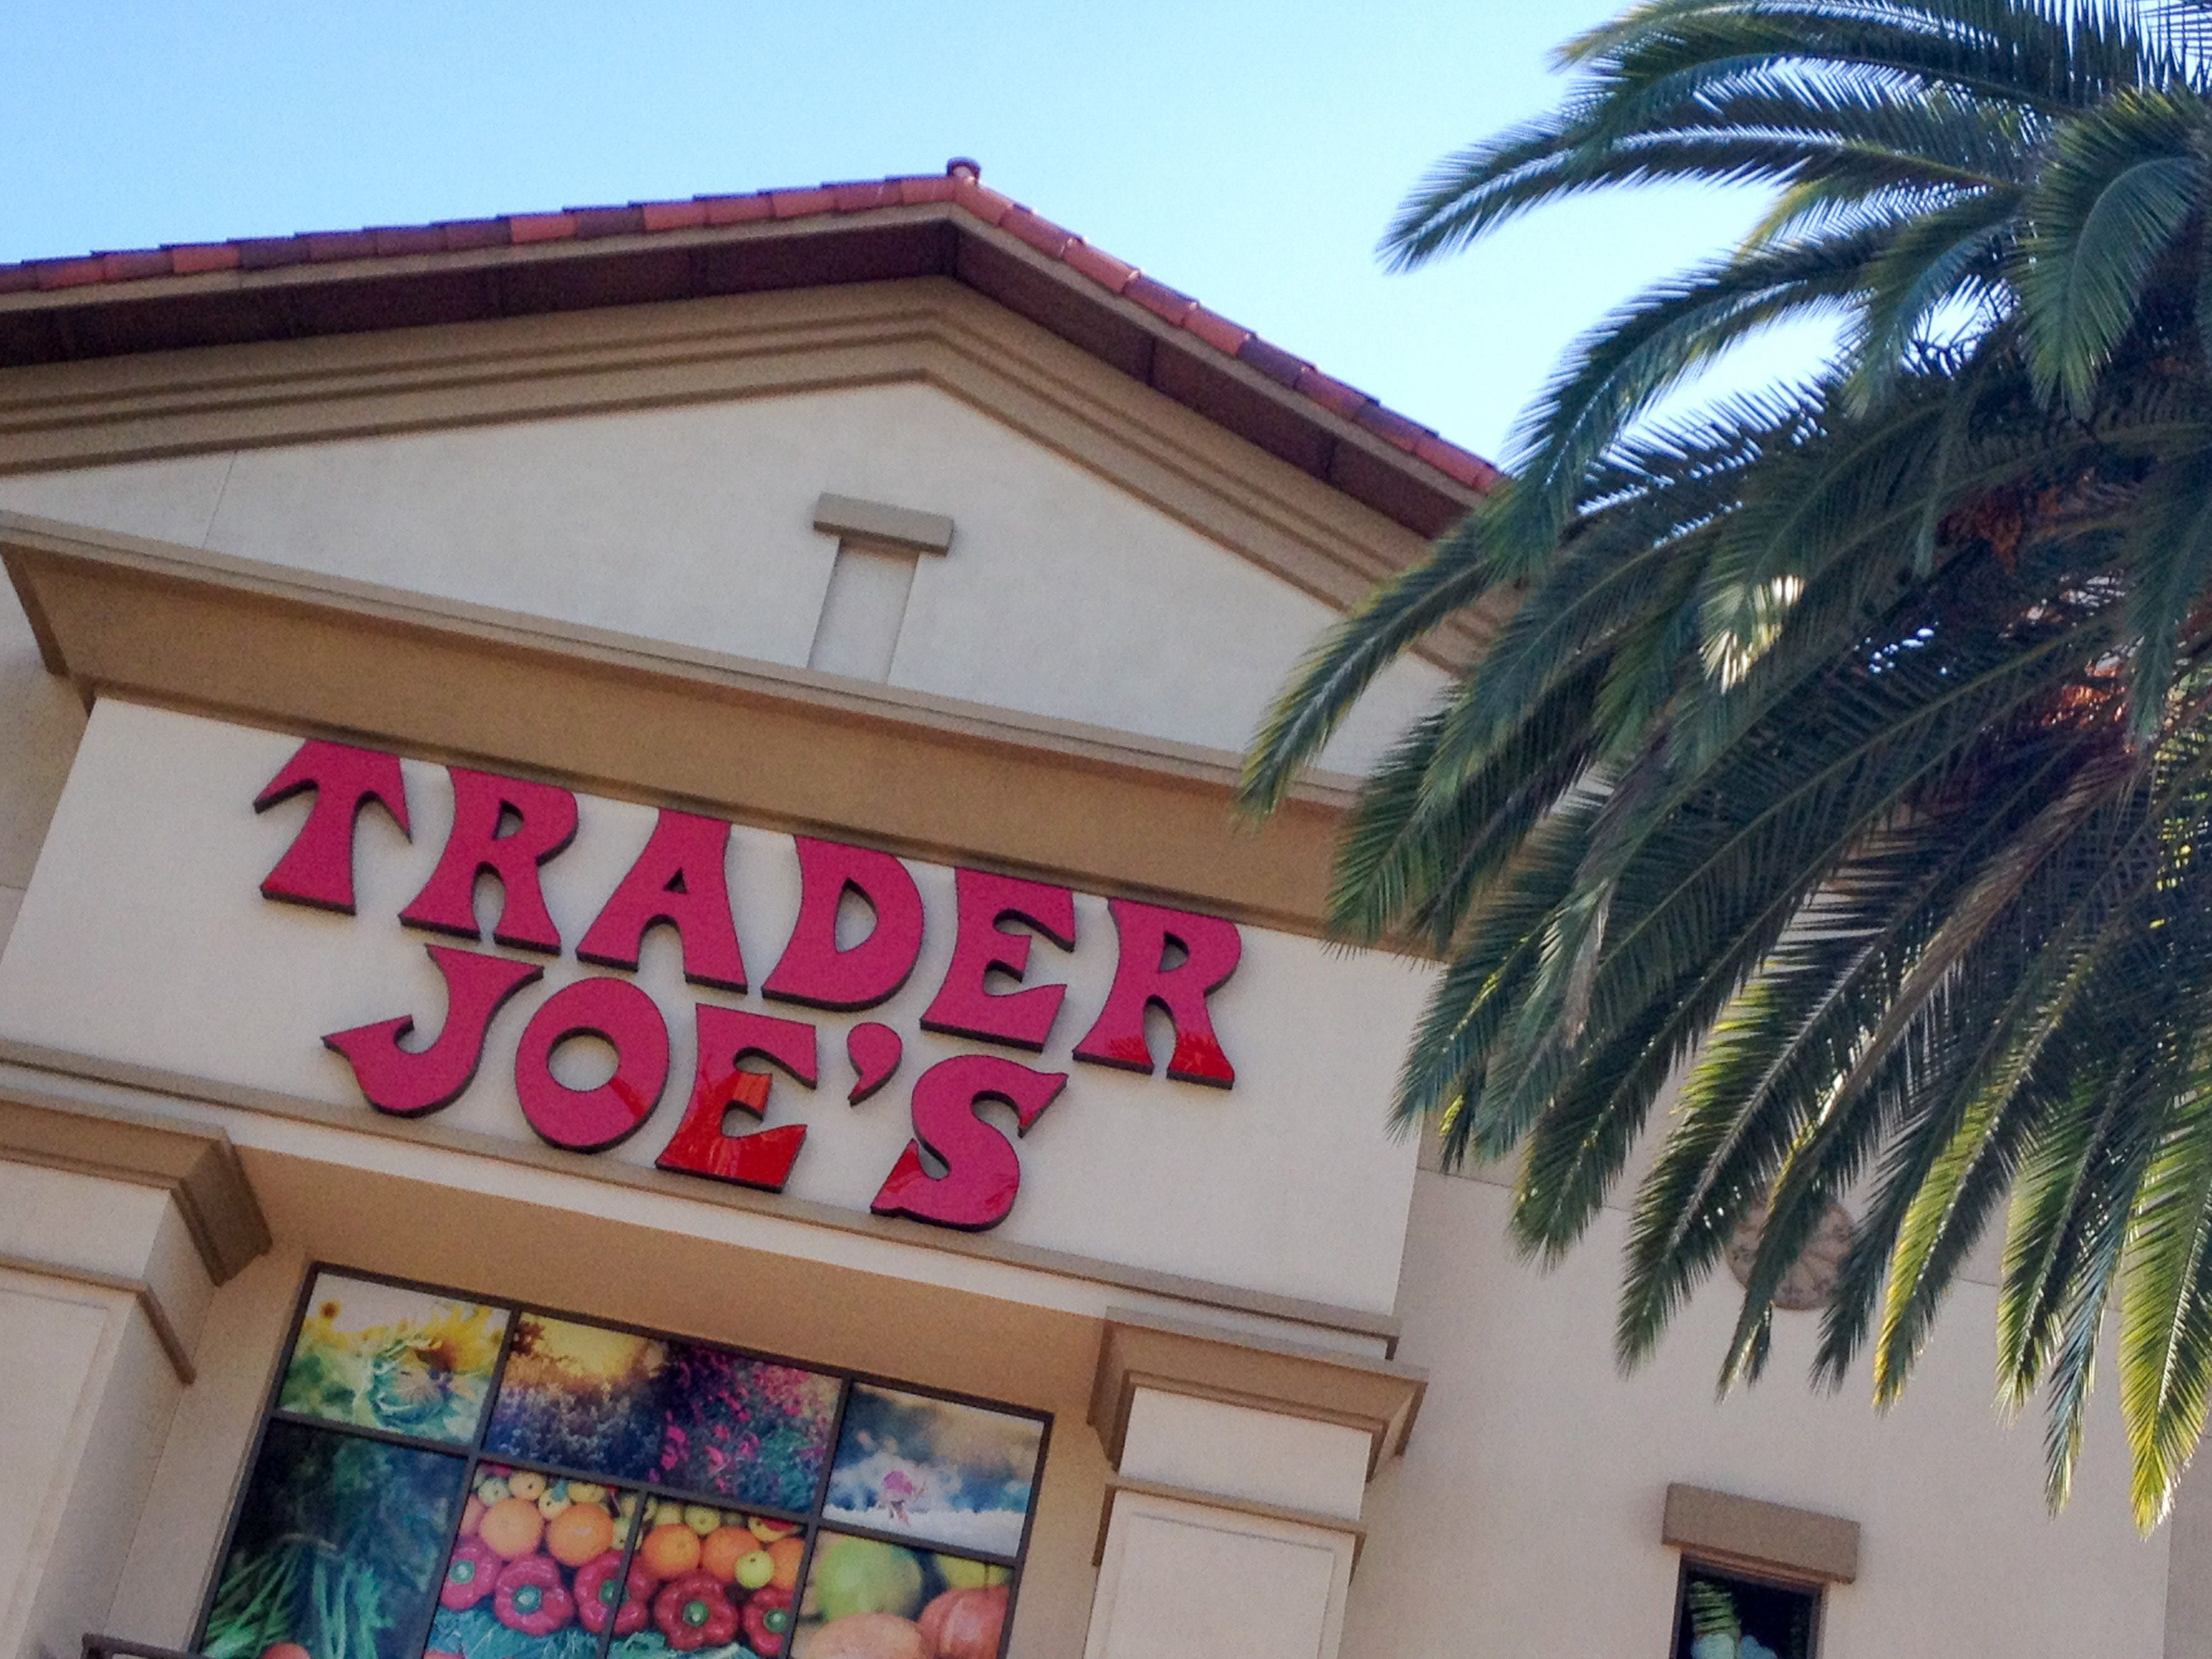 Trader Joe's Chicken Sausage Recall